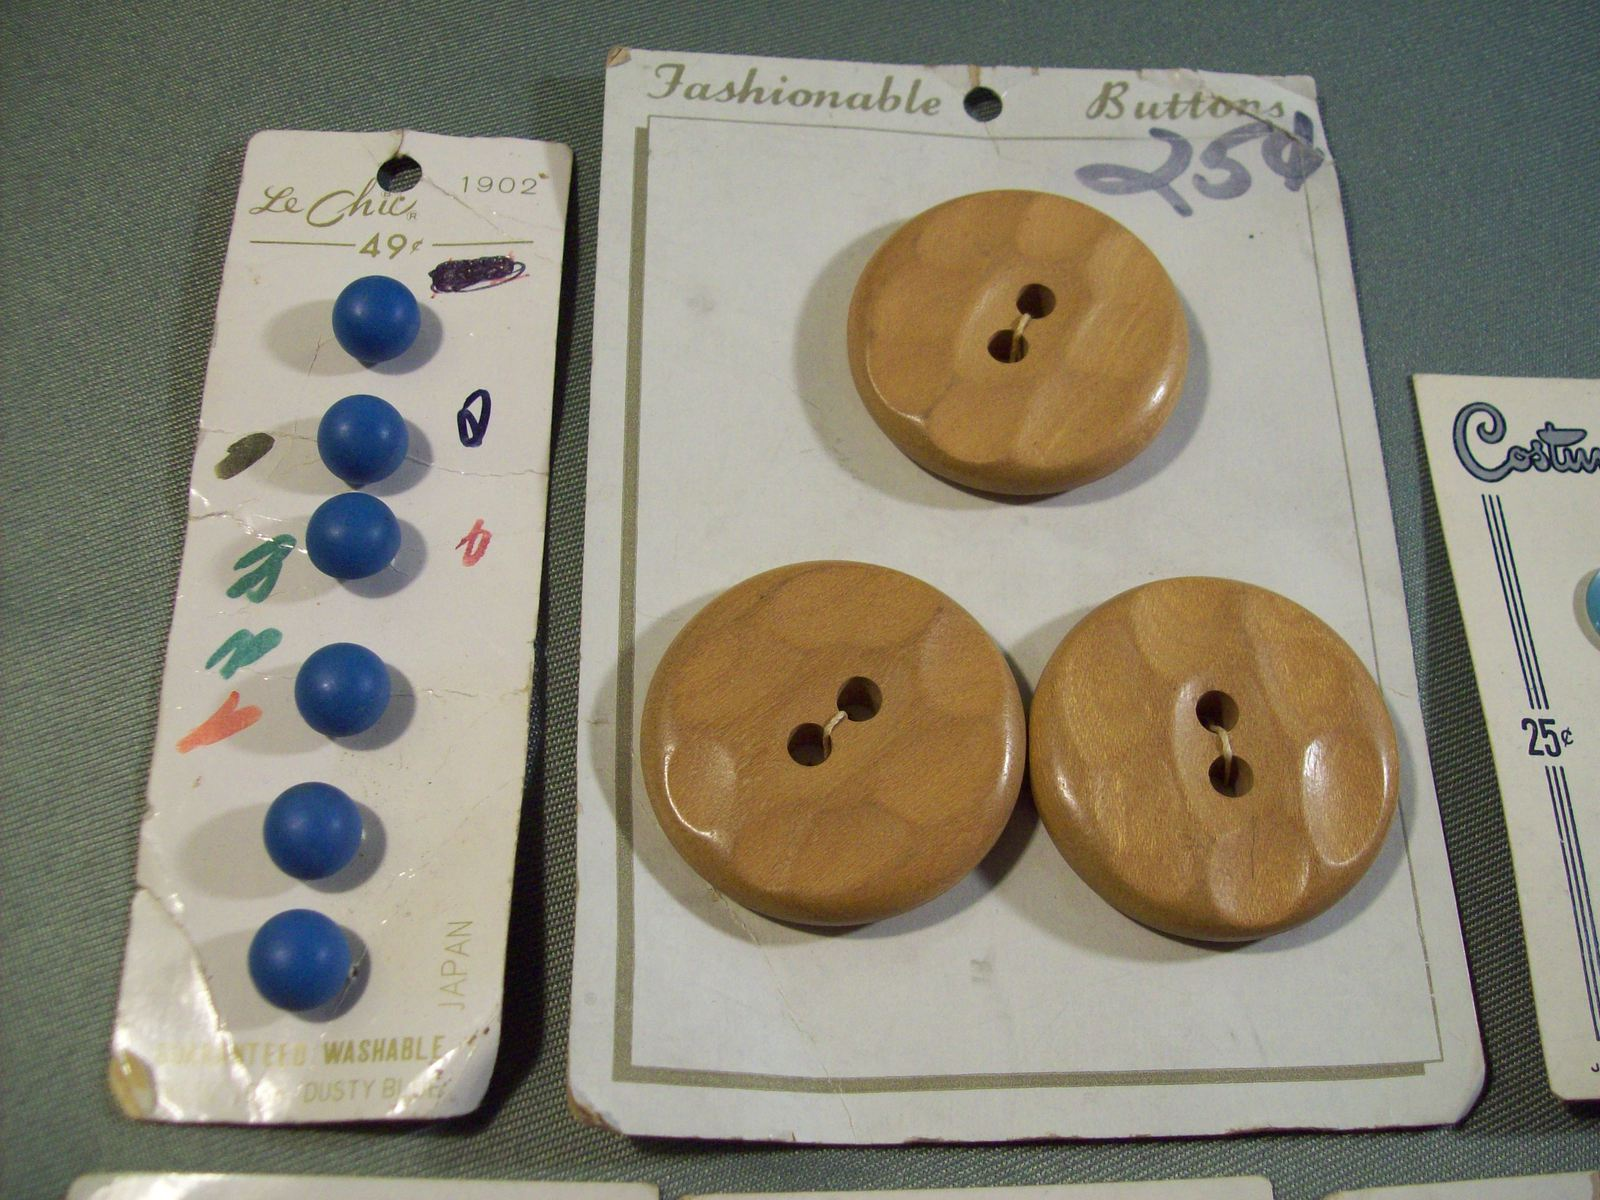 VINTAGE COSTUMAKERS LE CHIC & FASHIONABLE PLASTIC & WOOD BUTTONS ON CARDS